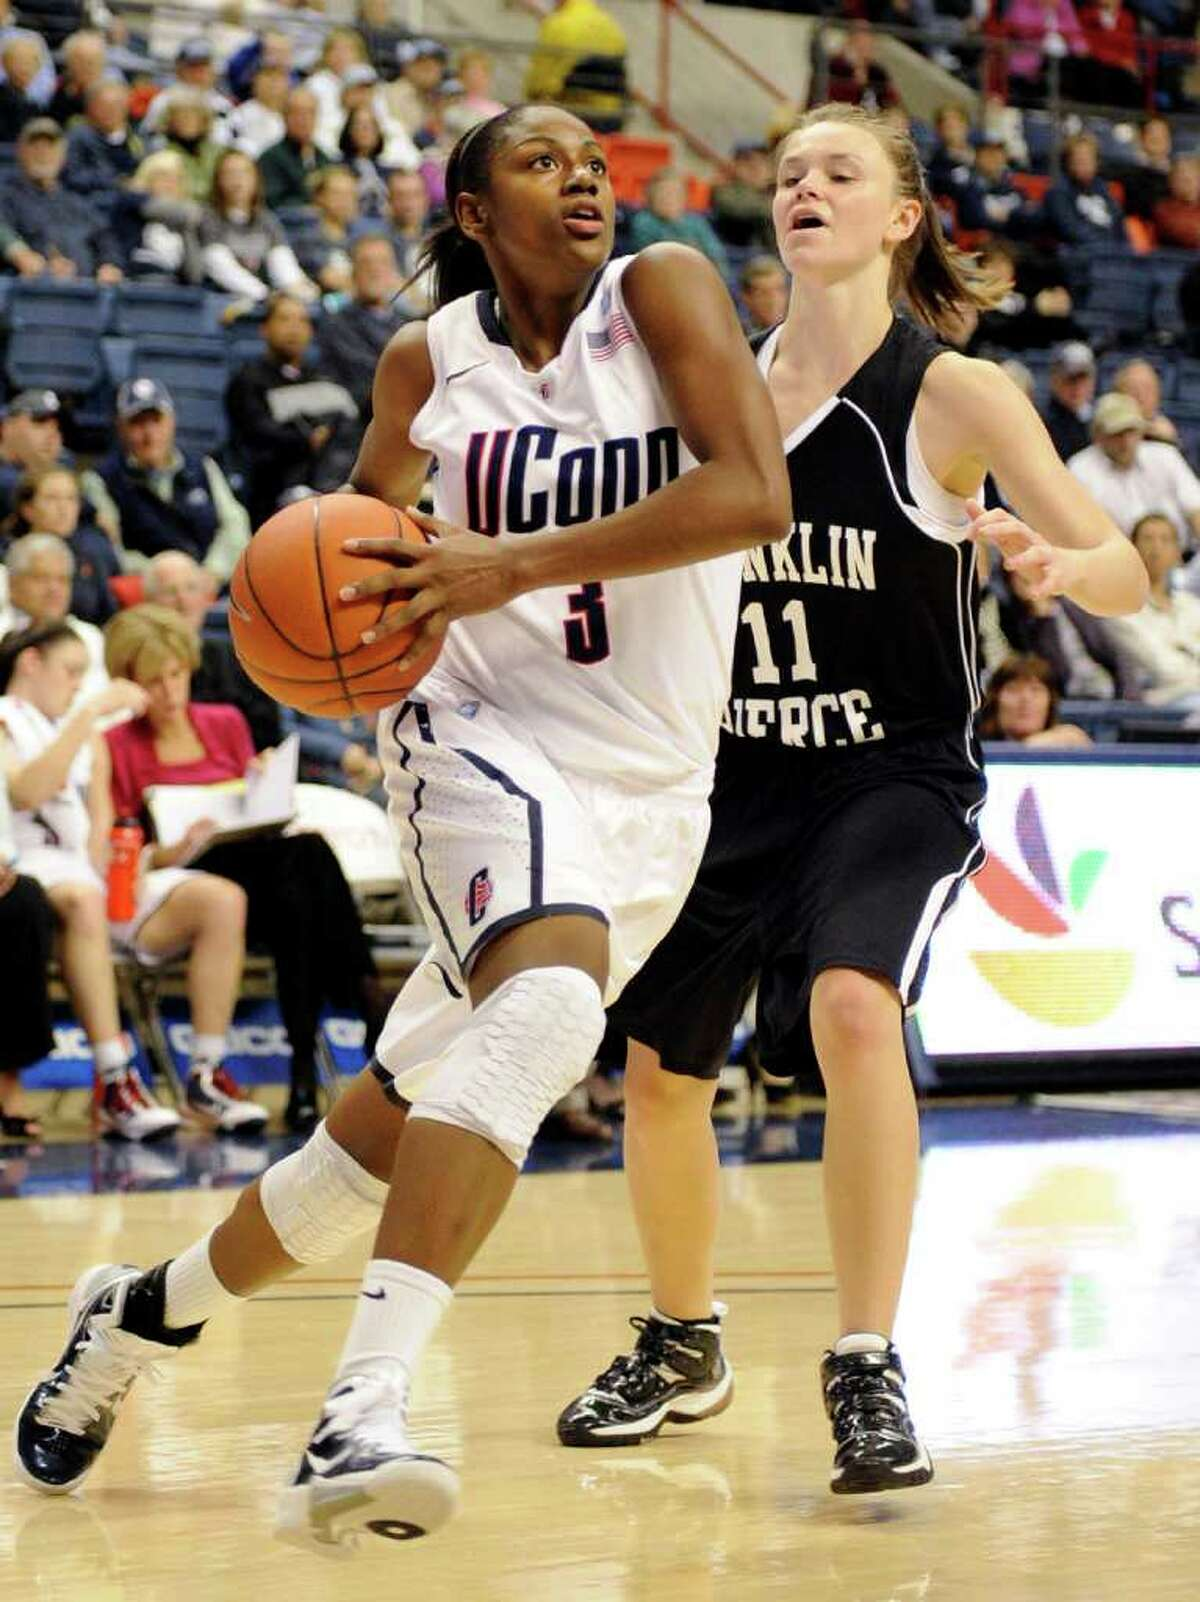 Connecticut's Tiffany Hayes, left, drives past Franklin Pierce's Brooke Coderre during the second half of their exhibition NCAA women's college basketball game in Storrs, Conn., on Thursday, Nov. 4, 2010. Hayes scored a game-high 25 points in her team's 112-41 victory. (AP Photo/Fred Beckham)